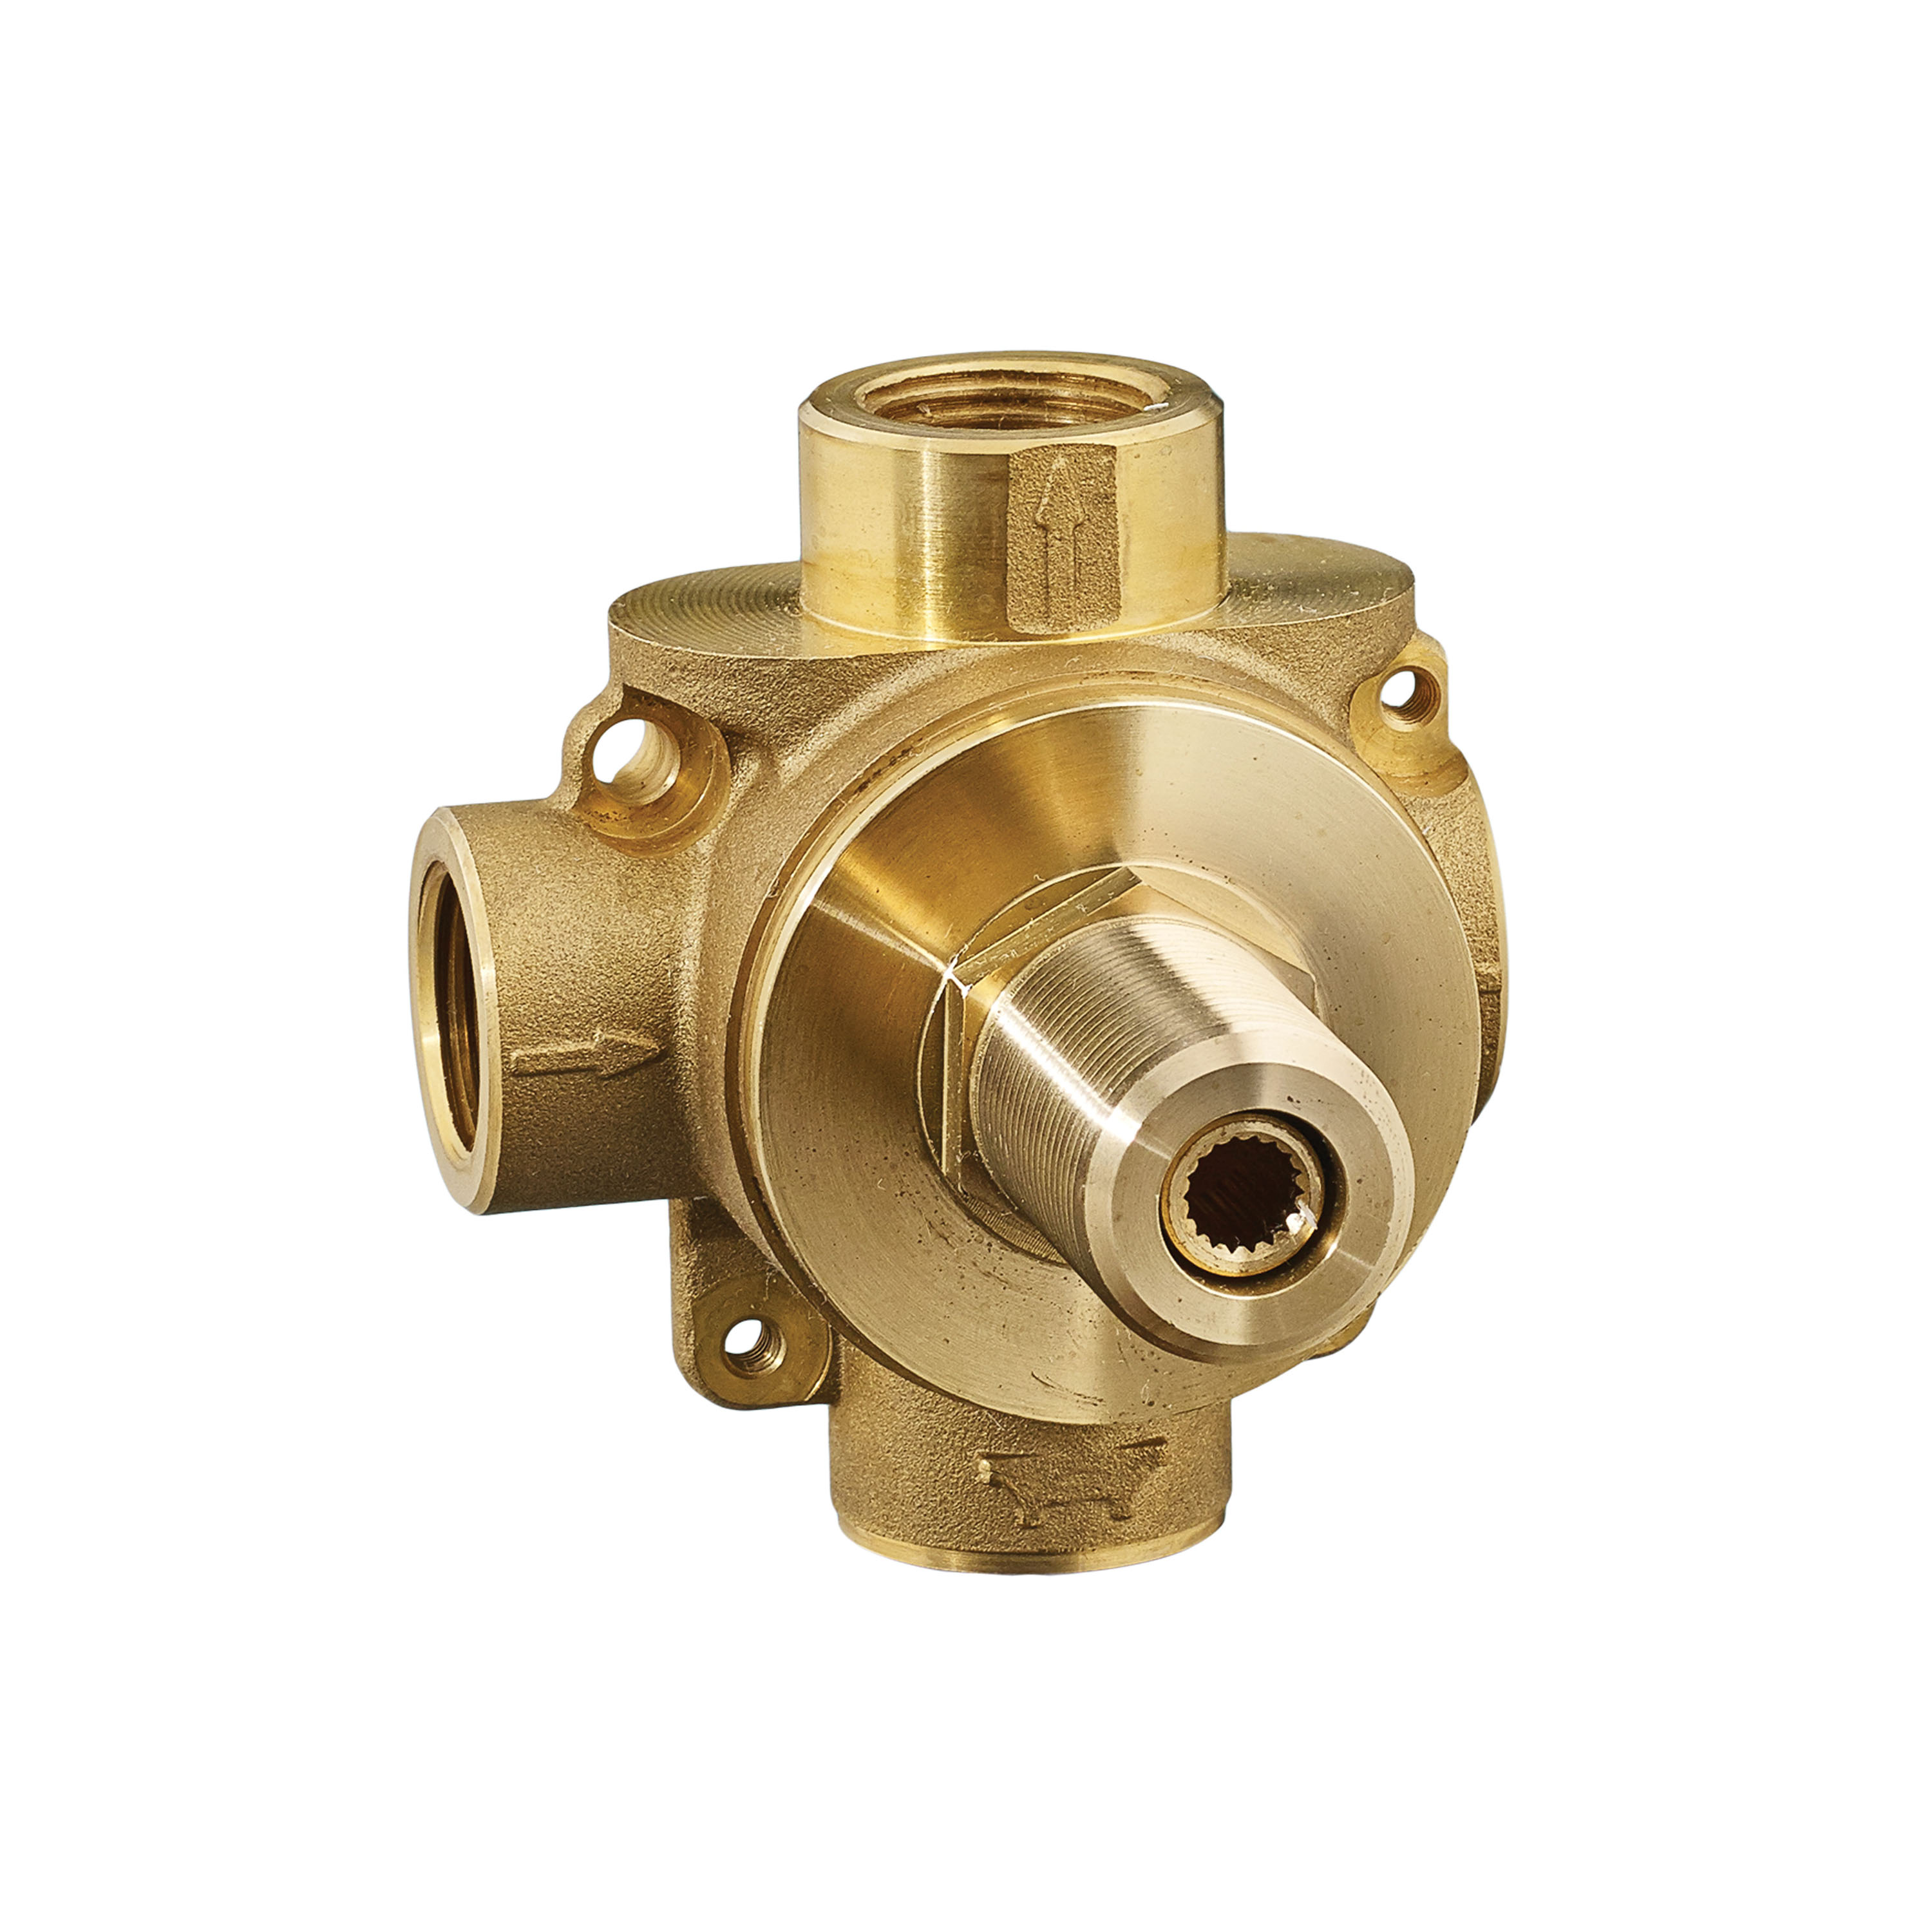 American Standard R422S In-Wall Diverter Rough-In Valve Body, 1/2 in NPT Inlet x 1/2 in NPT Outlet, 2 Ways, Cast Brass Body, Import